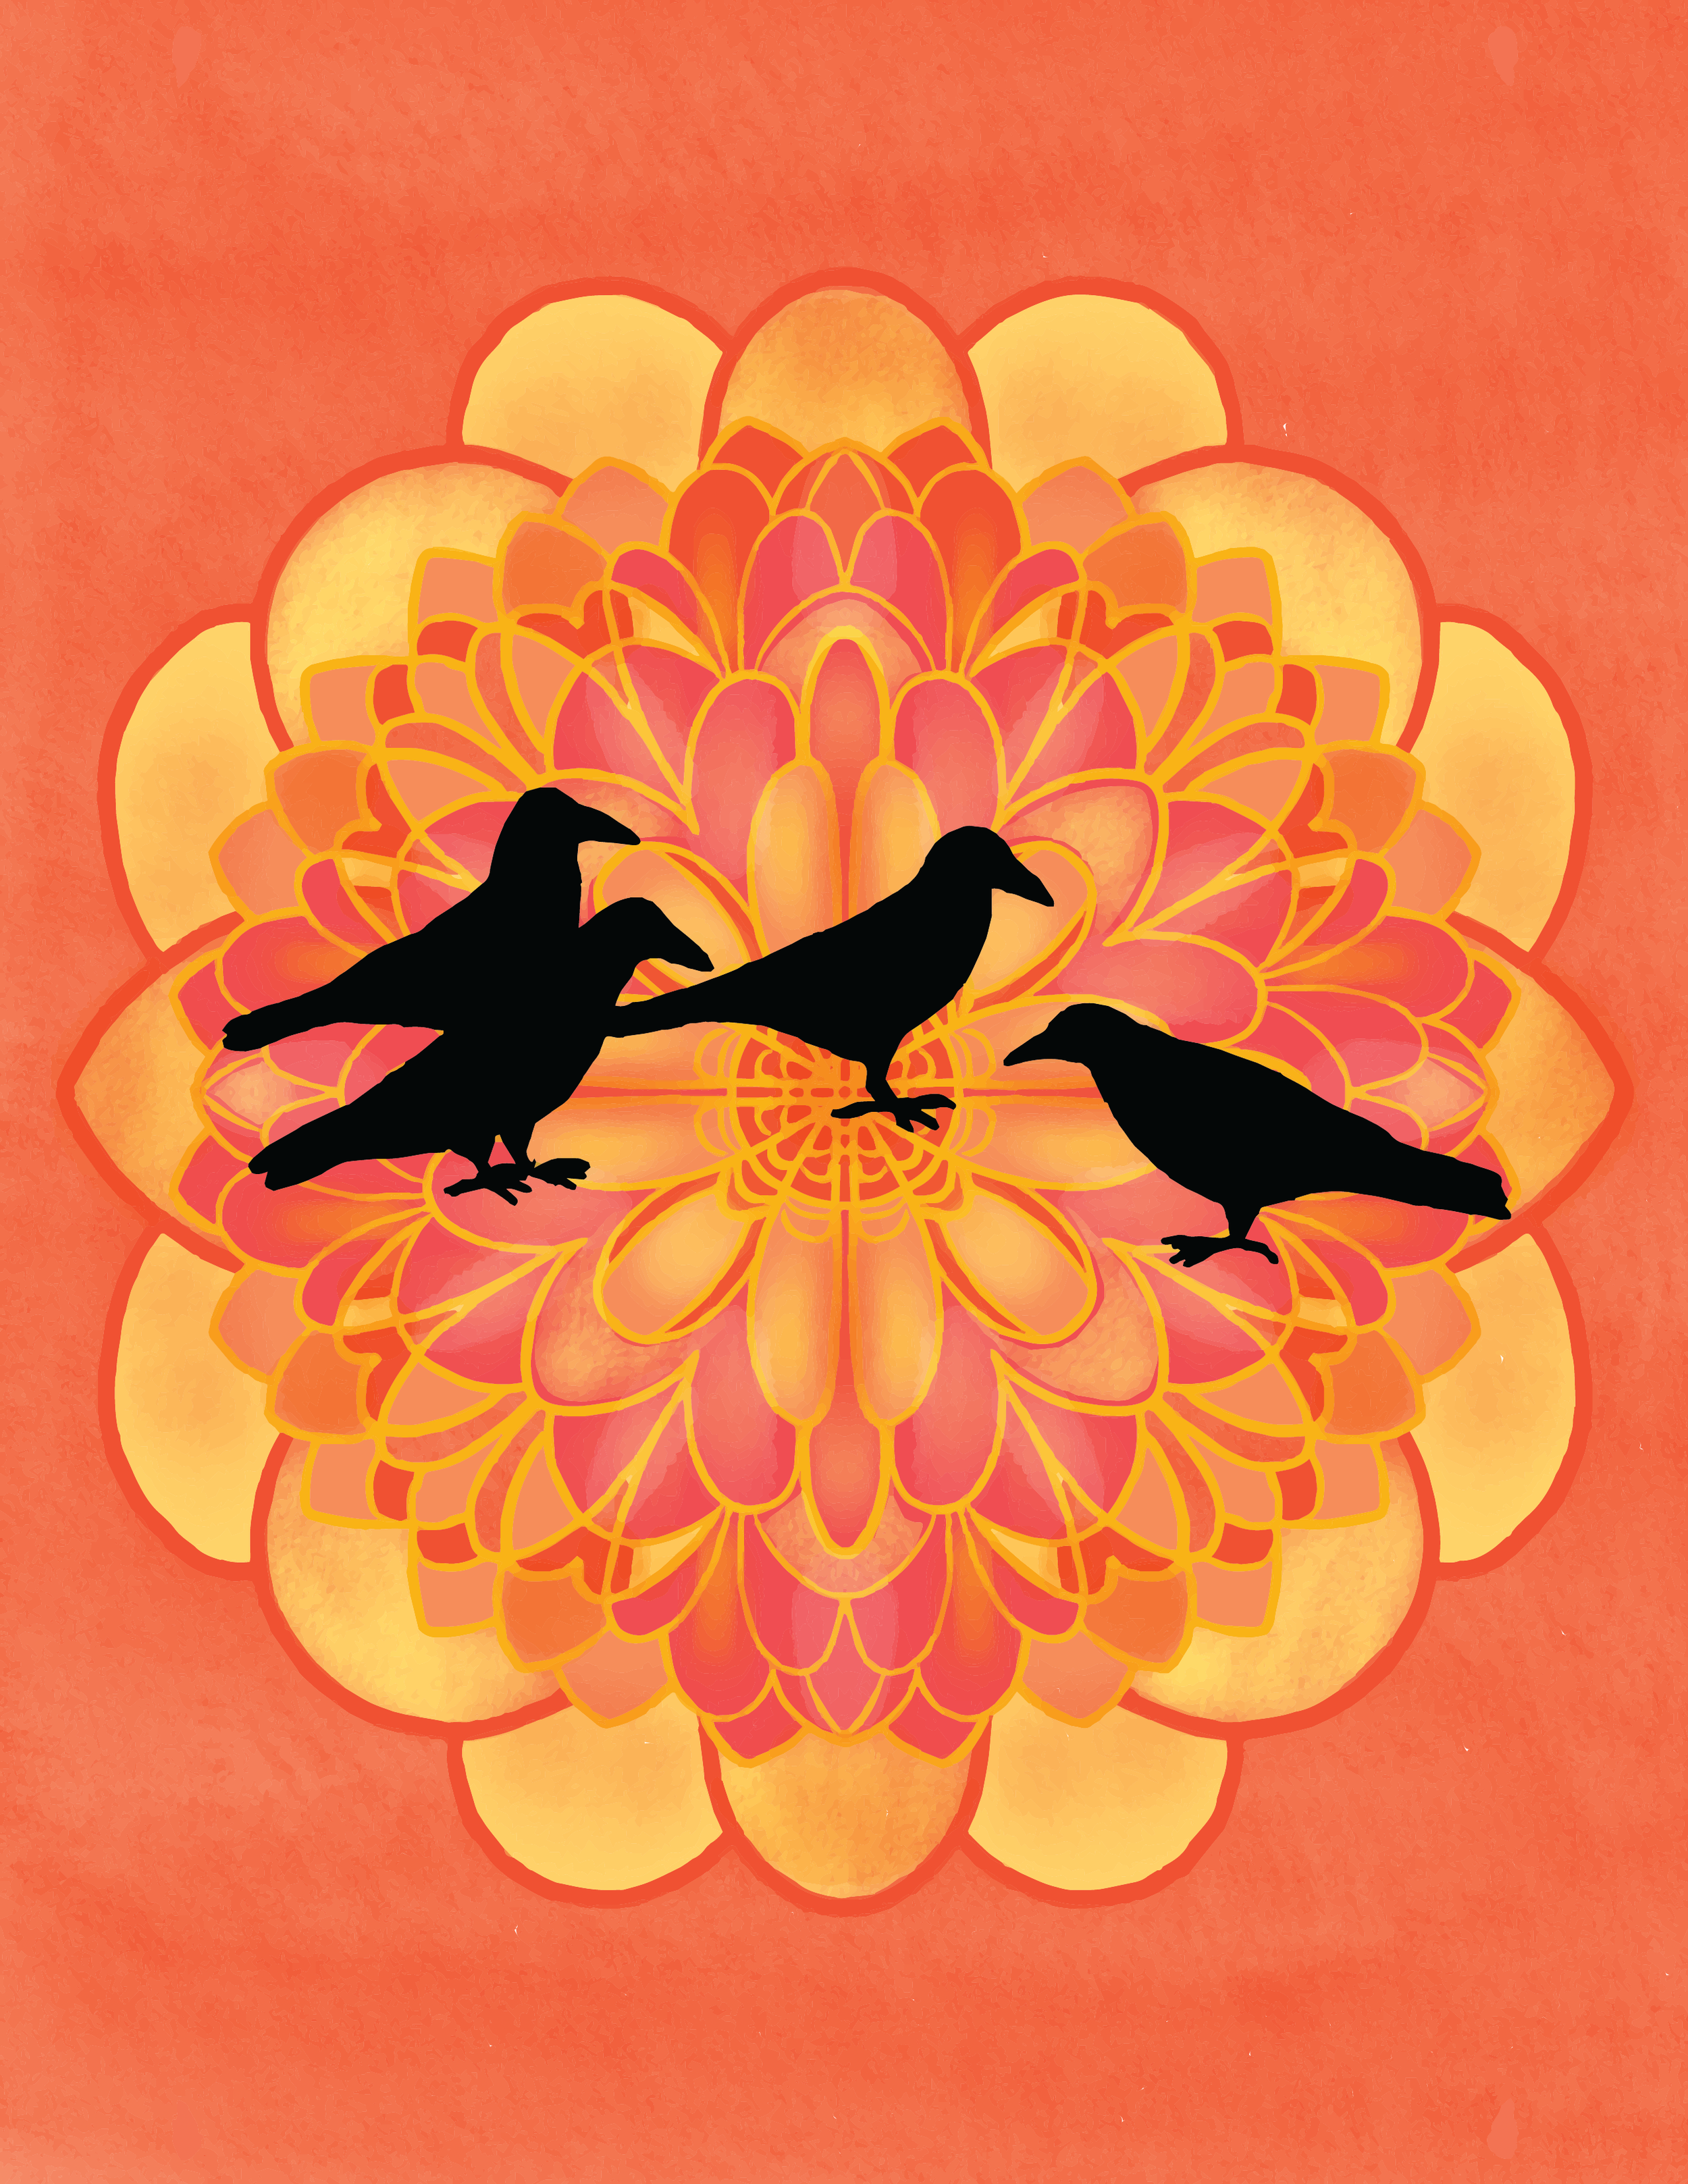 Raven messengers and a marigold mandala - adorn the cover for the autumn issue of Almanac of Seasonal Mindfulness. This issue will offer invitations related to the theme of harvest— including essays, practices and poetry about turning towards grief, seasonal reflection, release ritual, gratitude, foraging haiku, and honoring inner wisdom.Single issue subscriptions are now available for pre-order. (If you already subscribed to the full-year, the autumn issue is included in your subscription.)The fall issue goes live on Autumn Equinox, September 23rd.